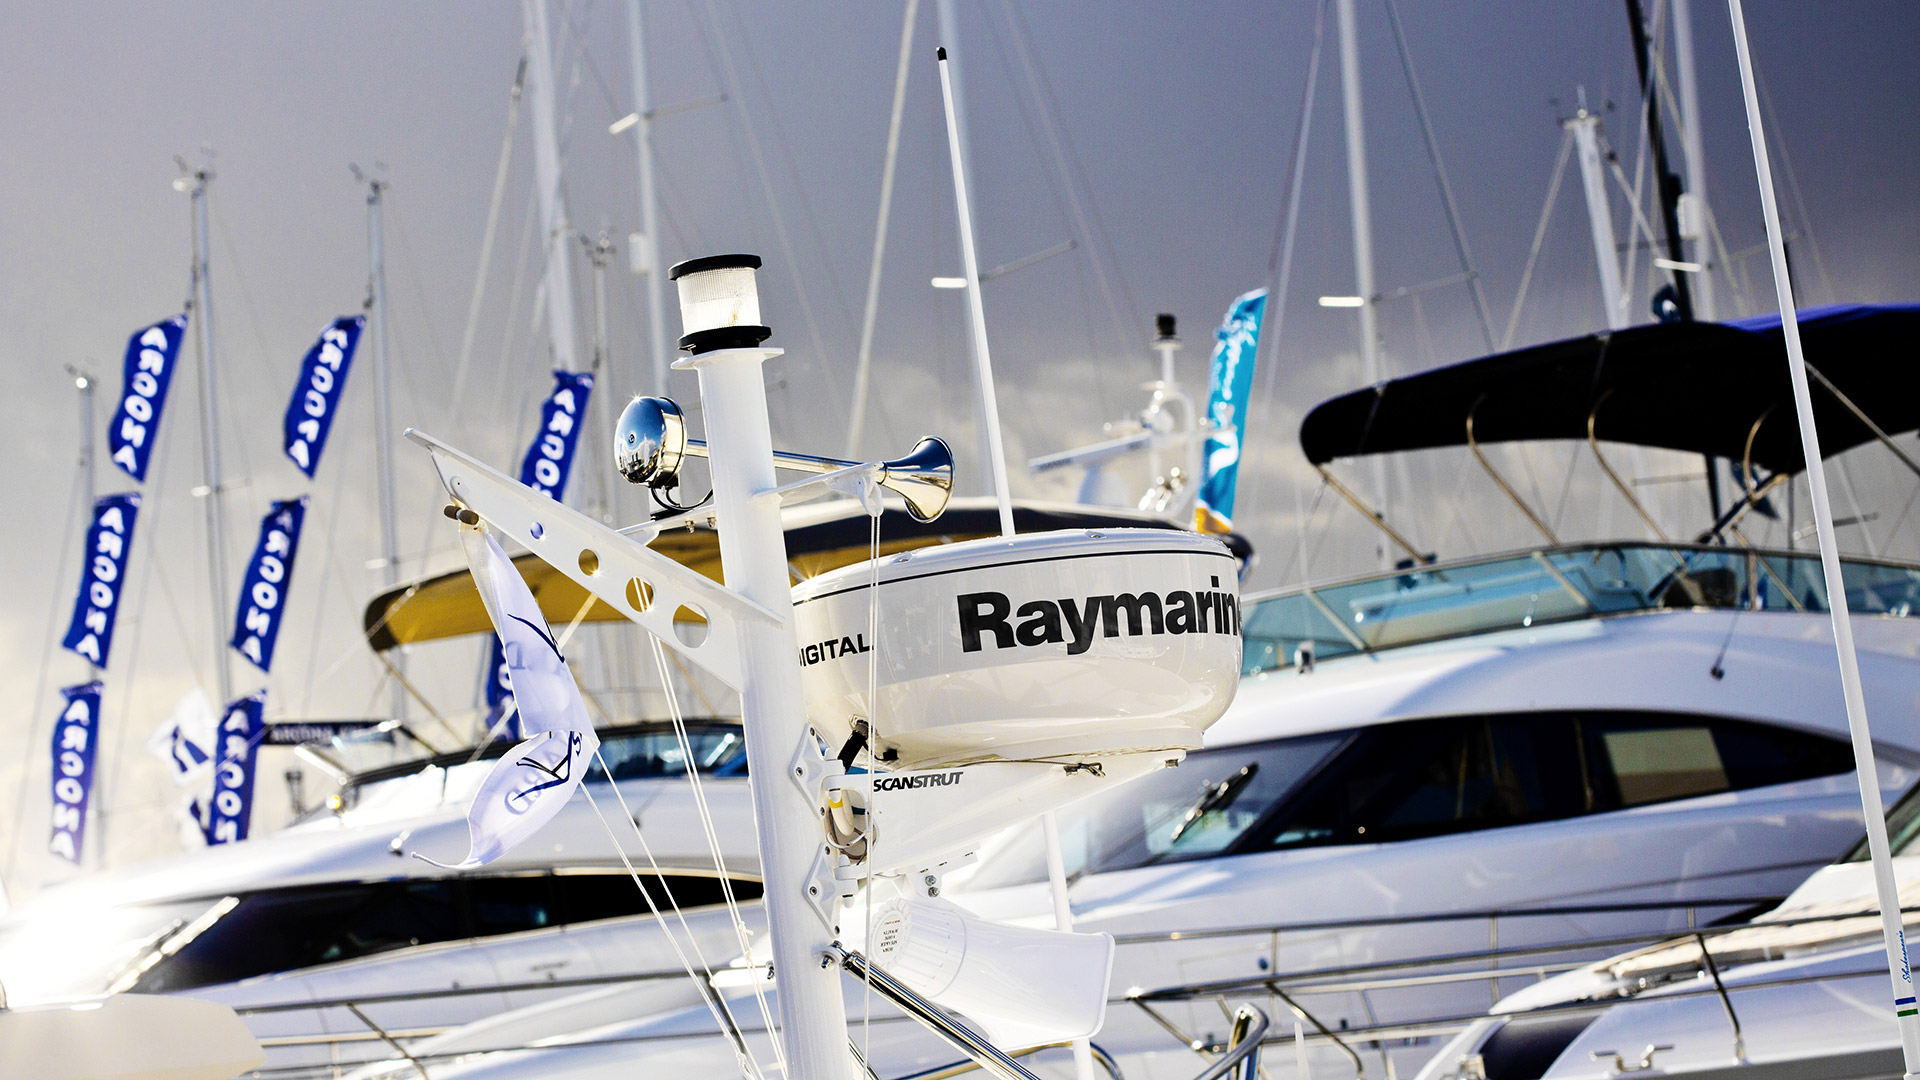 Cowes Week Isle of Wight - Raymarine Yachts